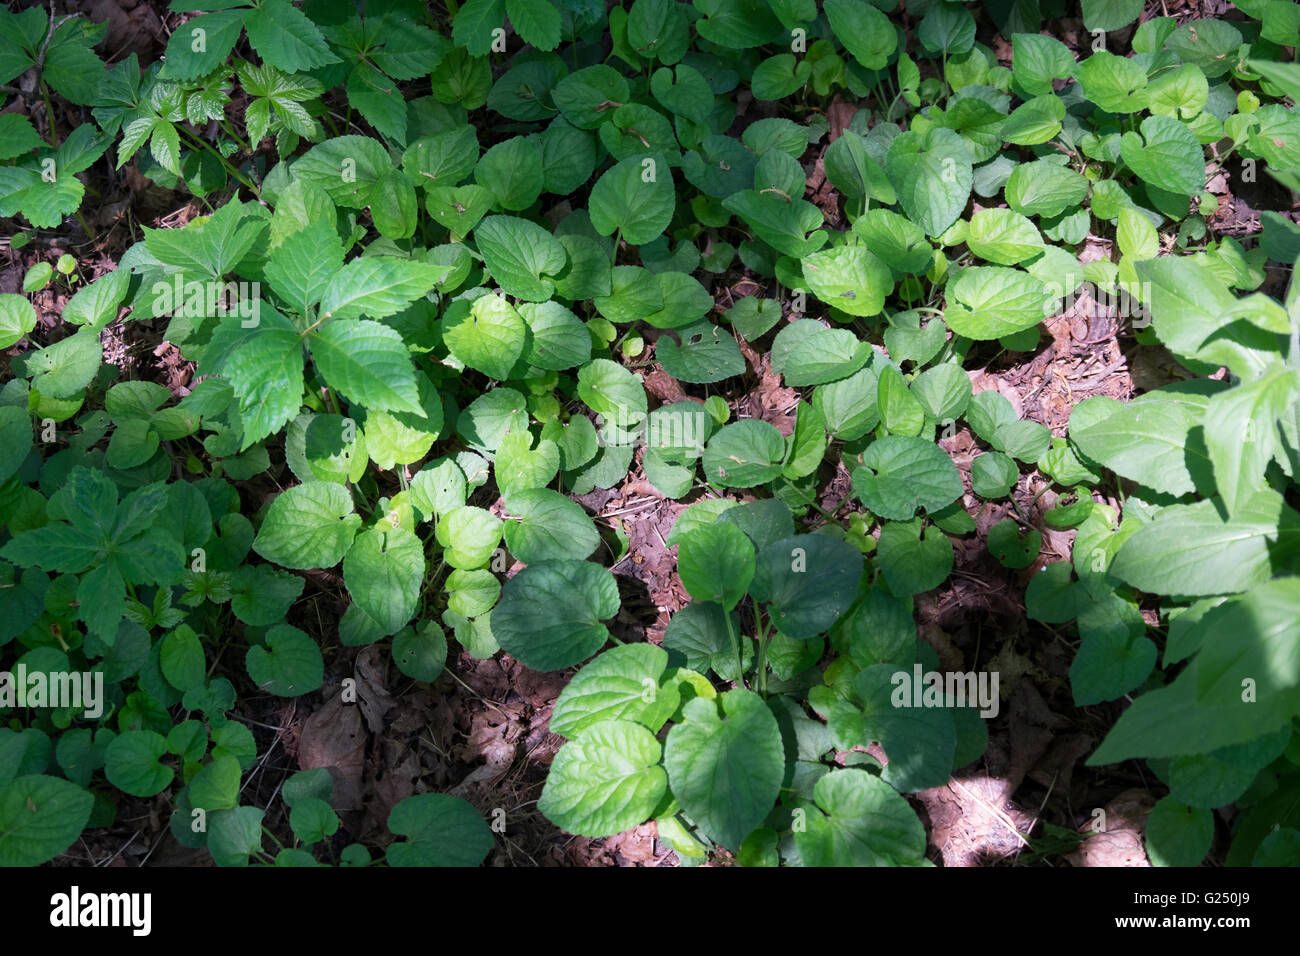 A Pattern Of Green Plants Growing On The Forest Floor In